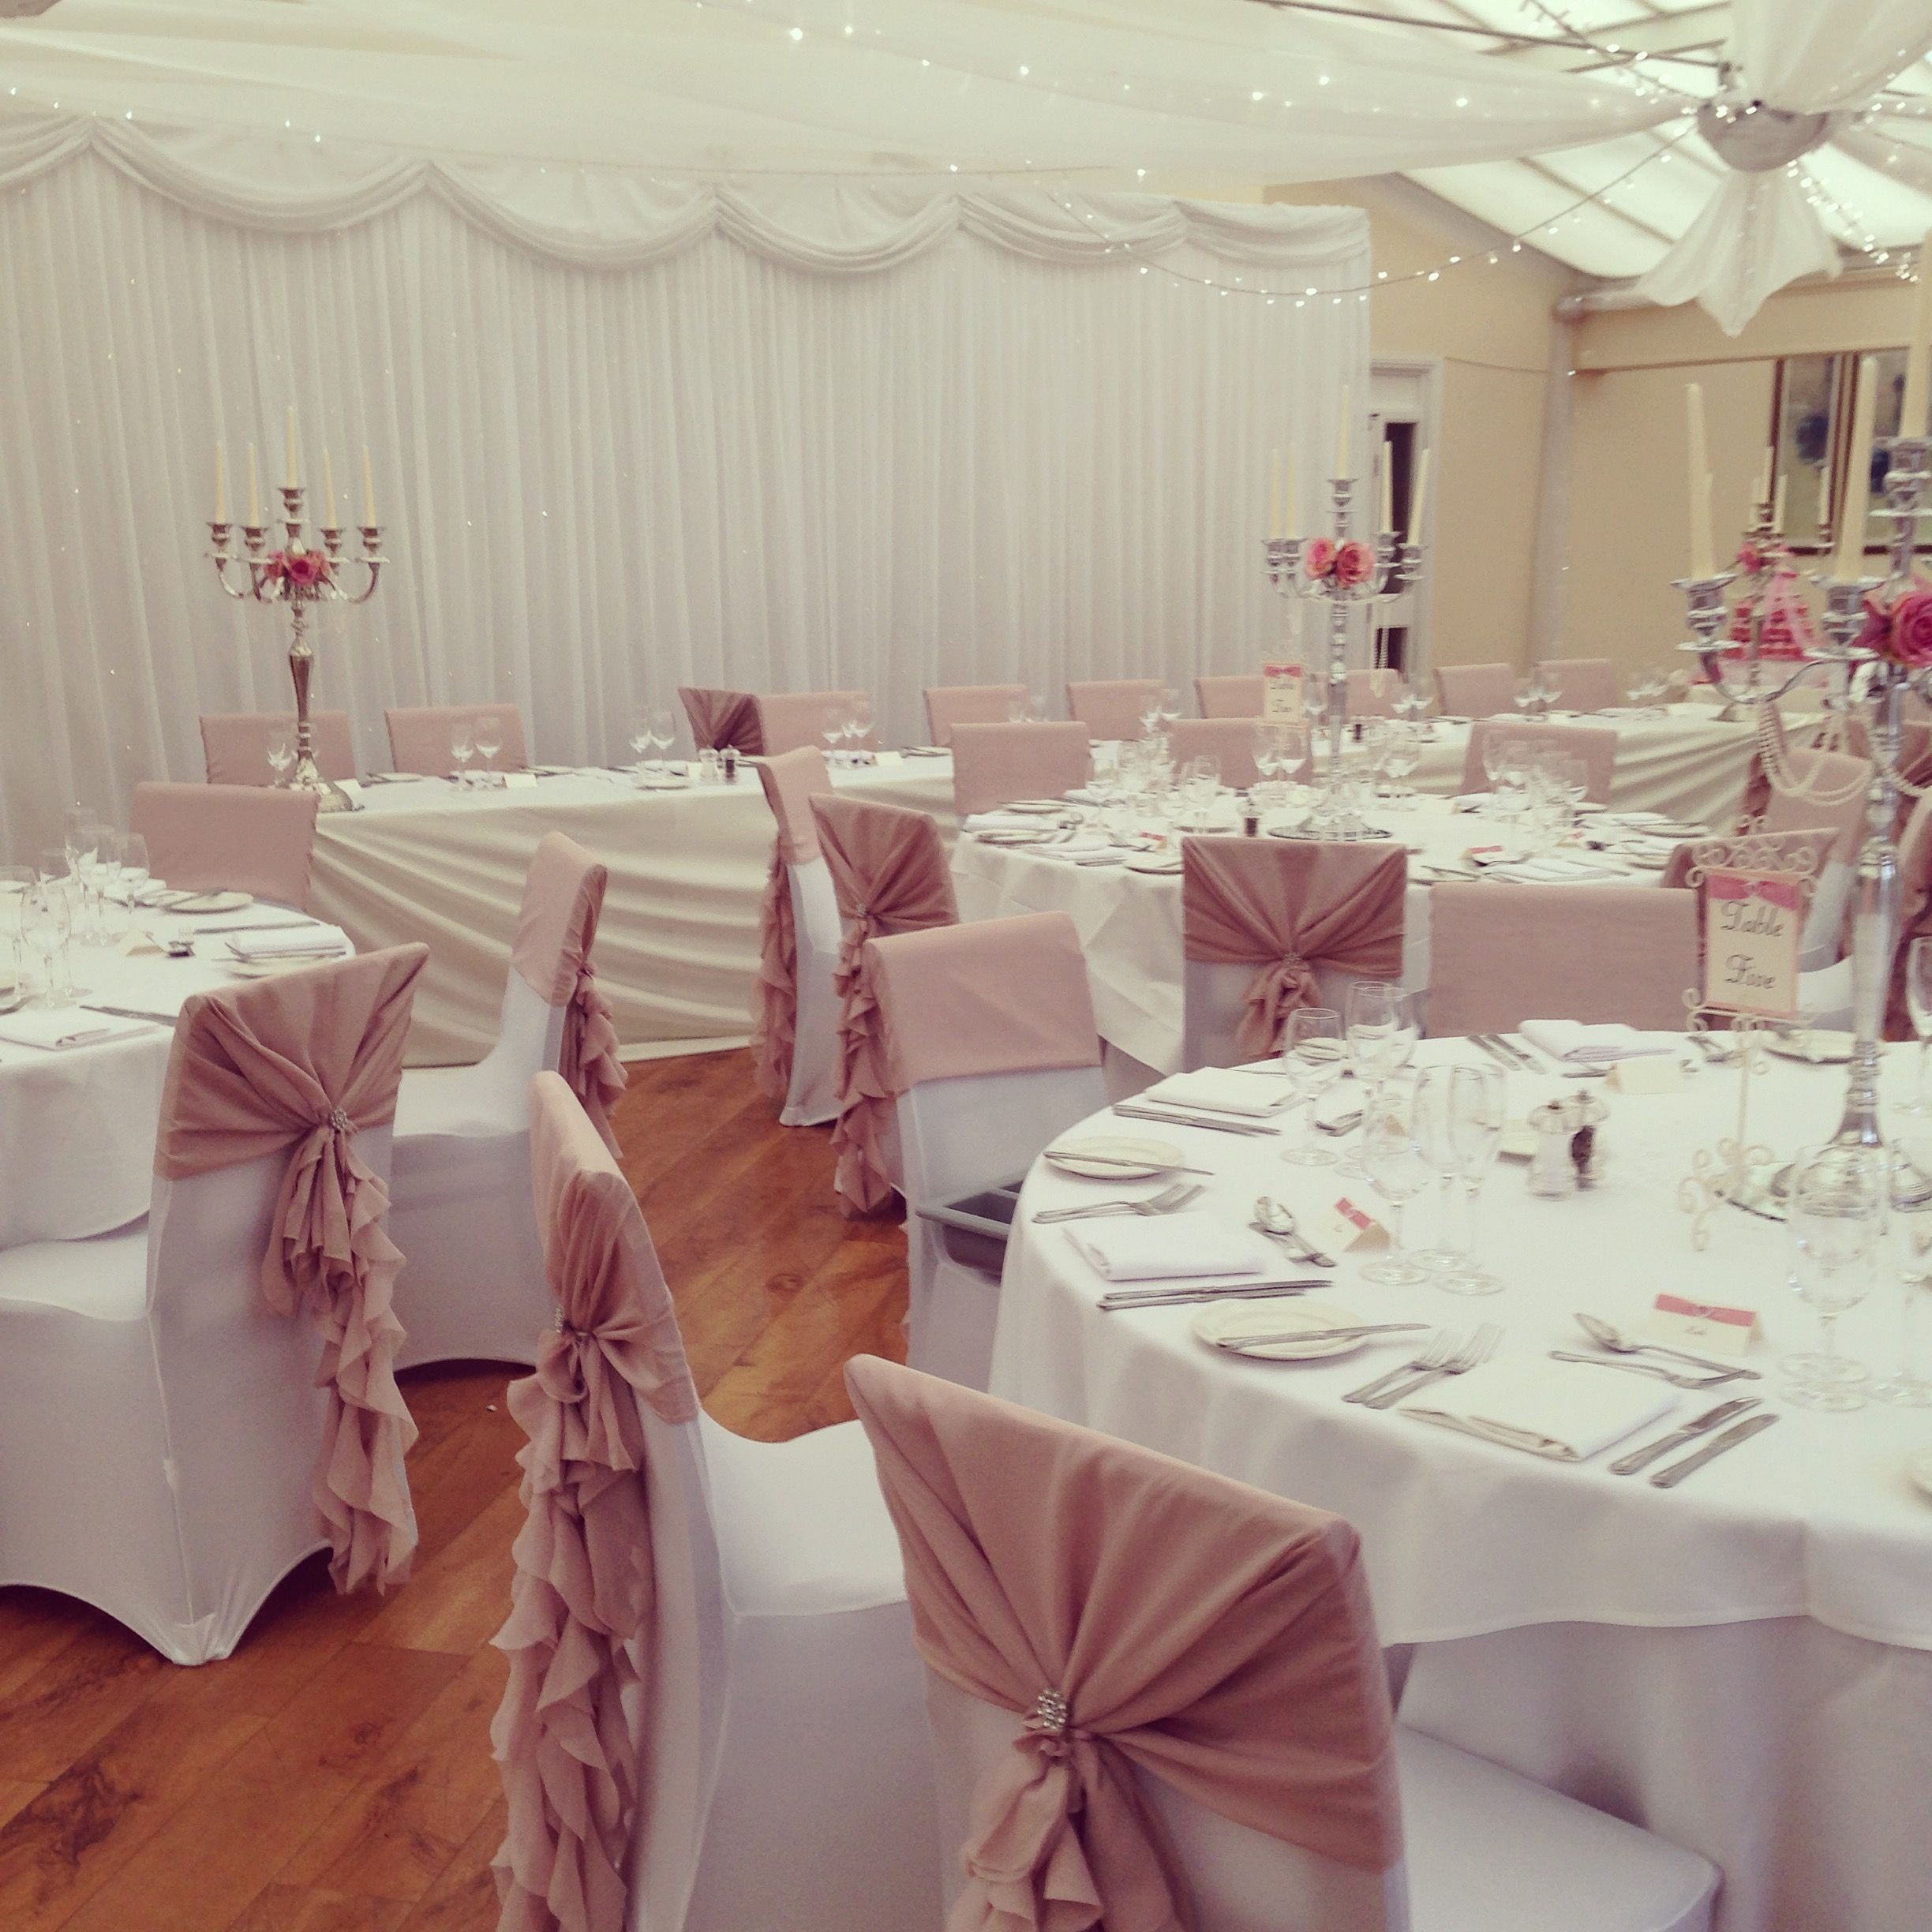 wedding chair covers warrington robins egg blue dusky pink ruffle hoods with diamante brooches over